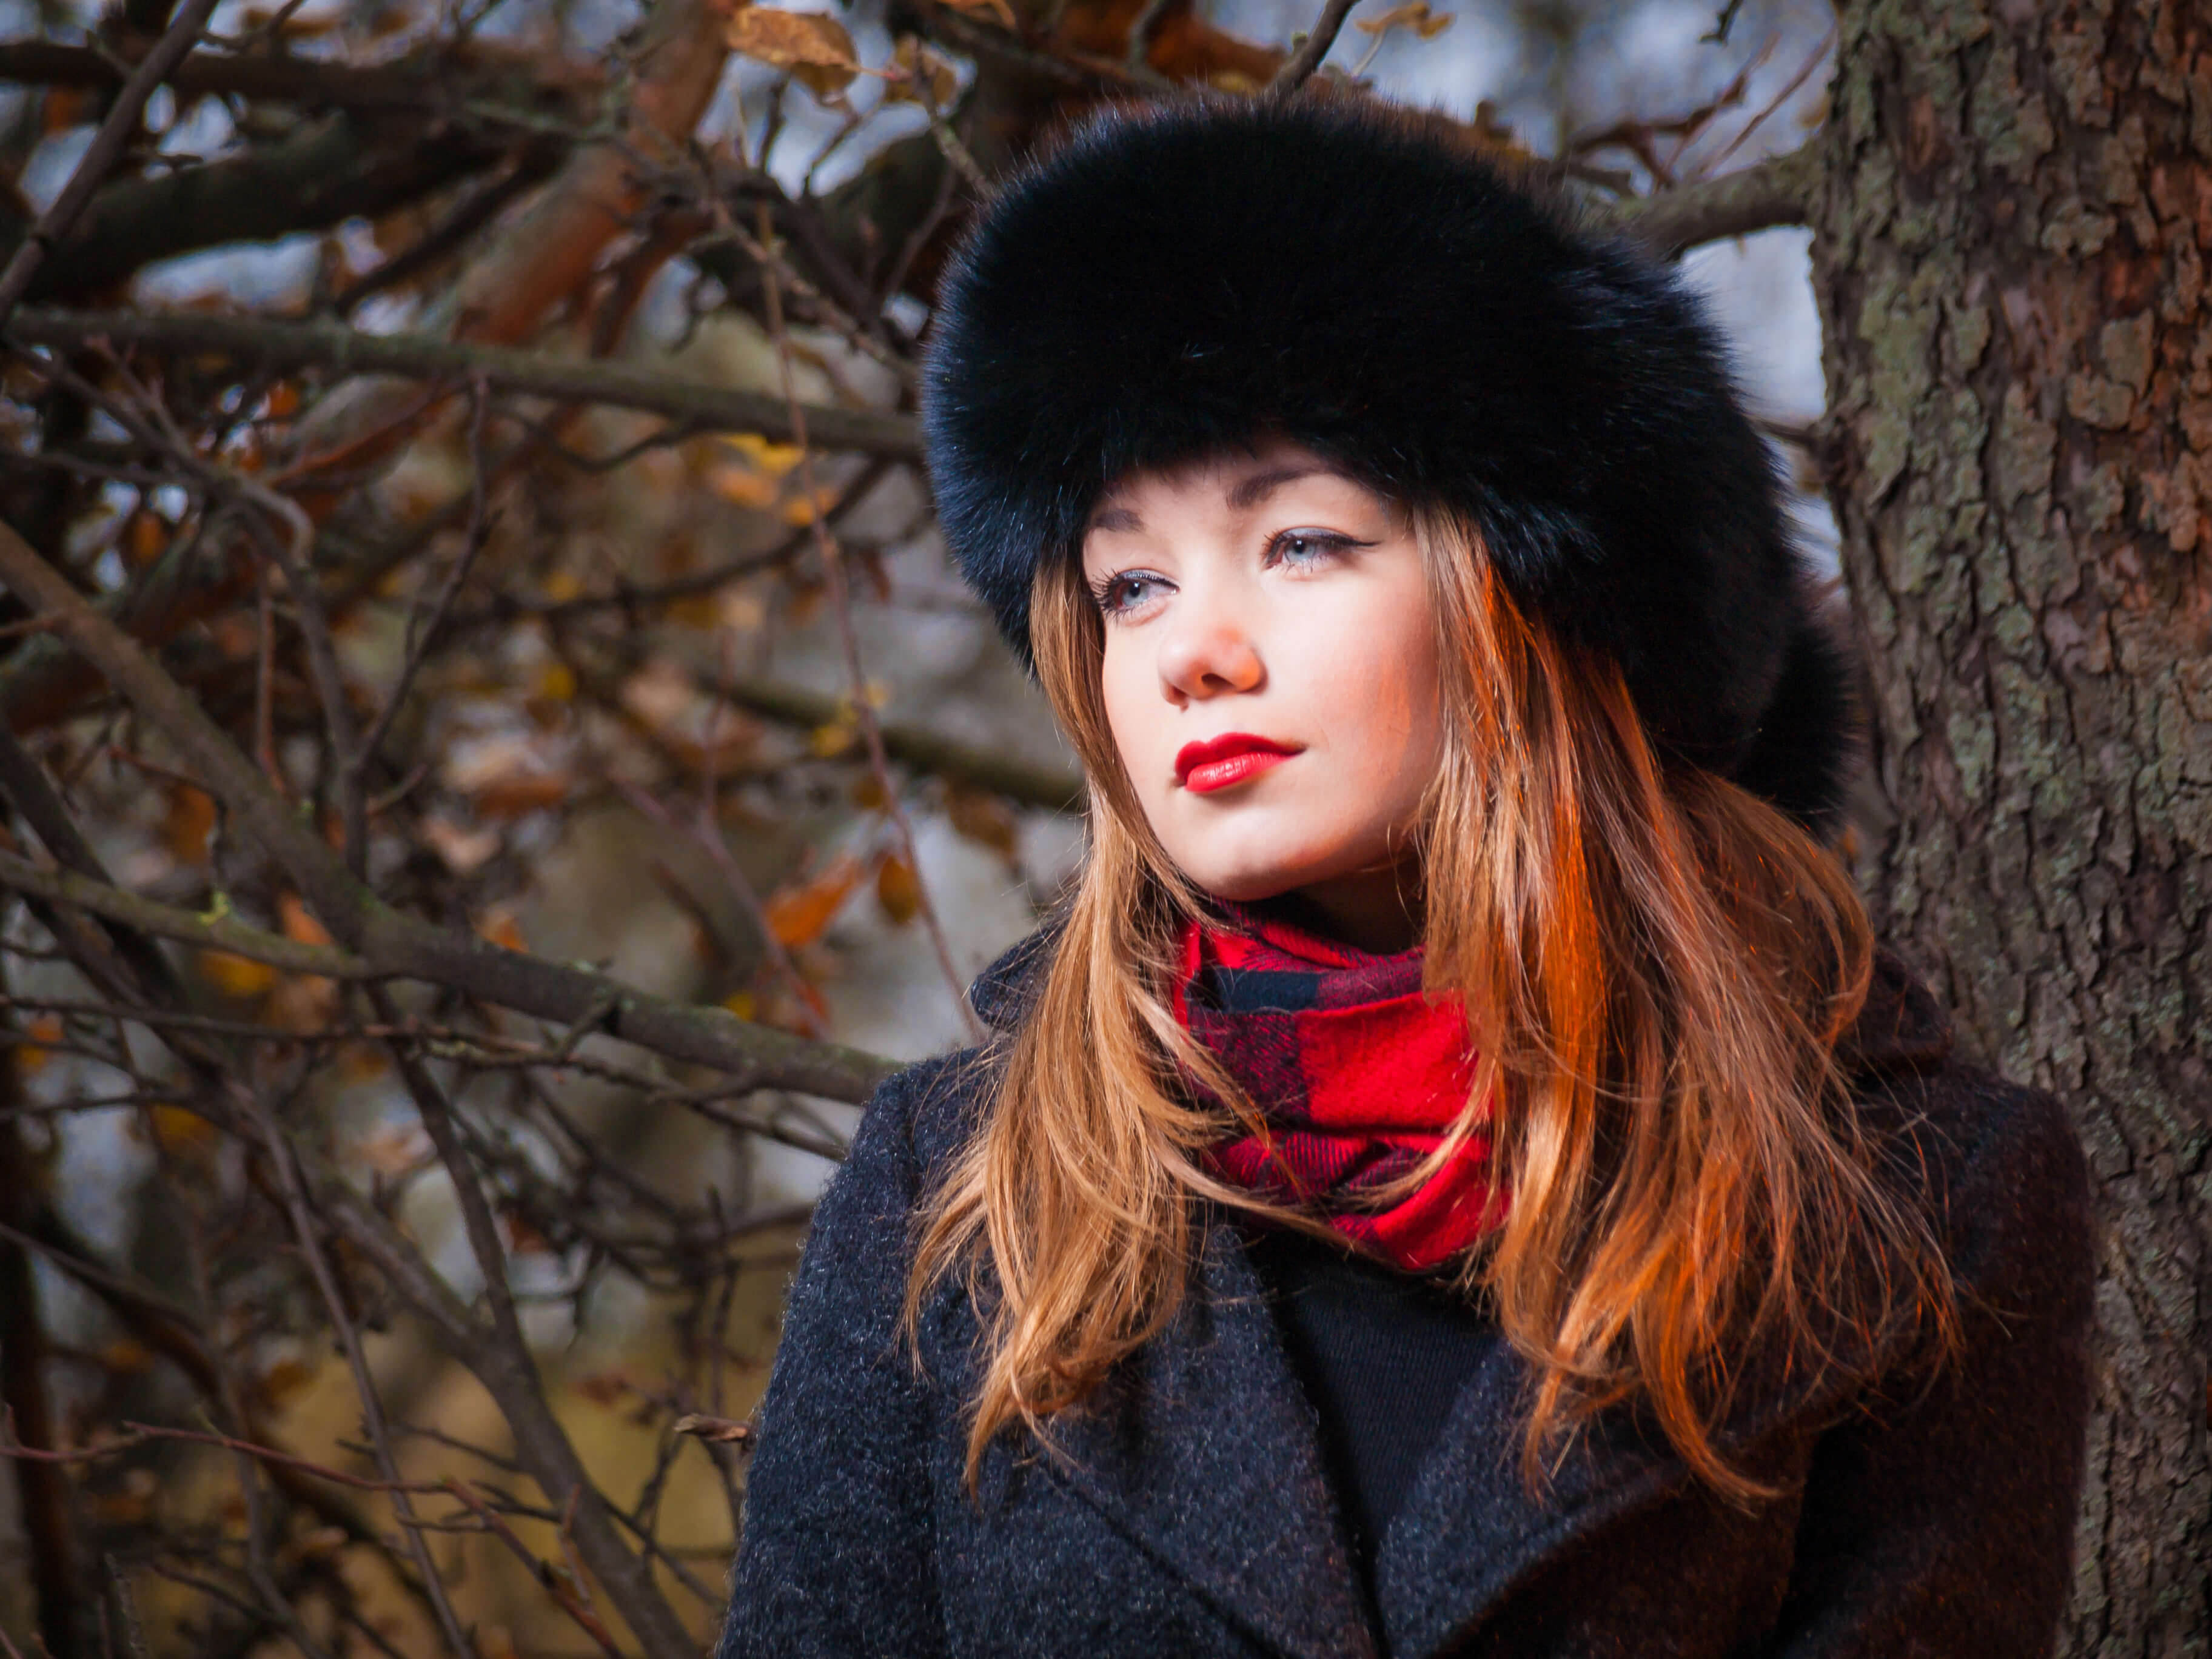 Advertising photographer that made this phot of looking girl model that dressed in a warm coat photography for a commercial project for the manufacture of warm things photo made by Fantastic Imago Branding, Advertising and Consulting Agency